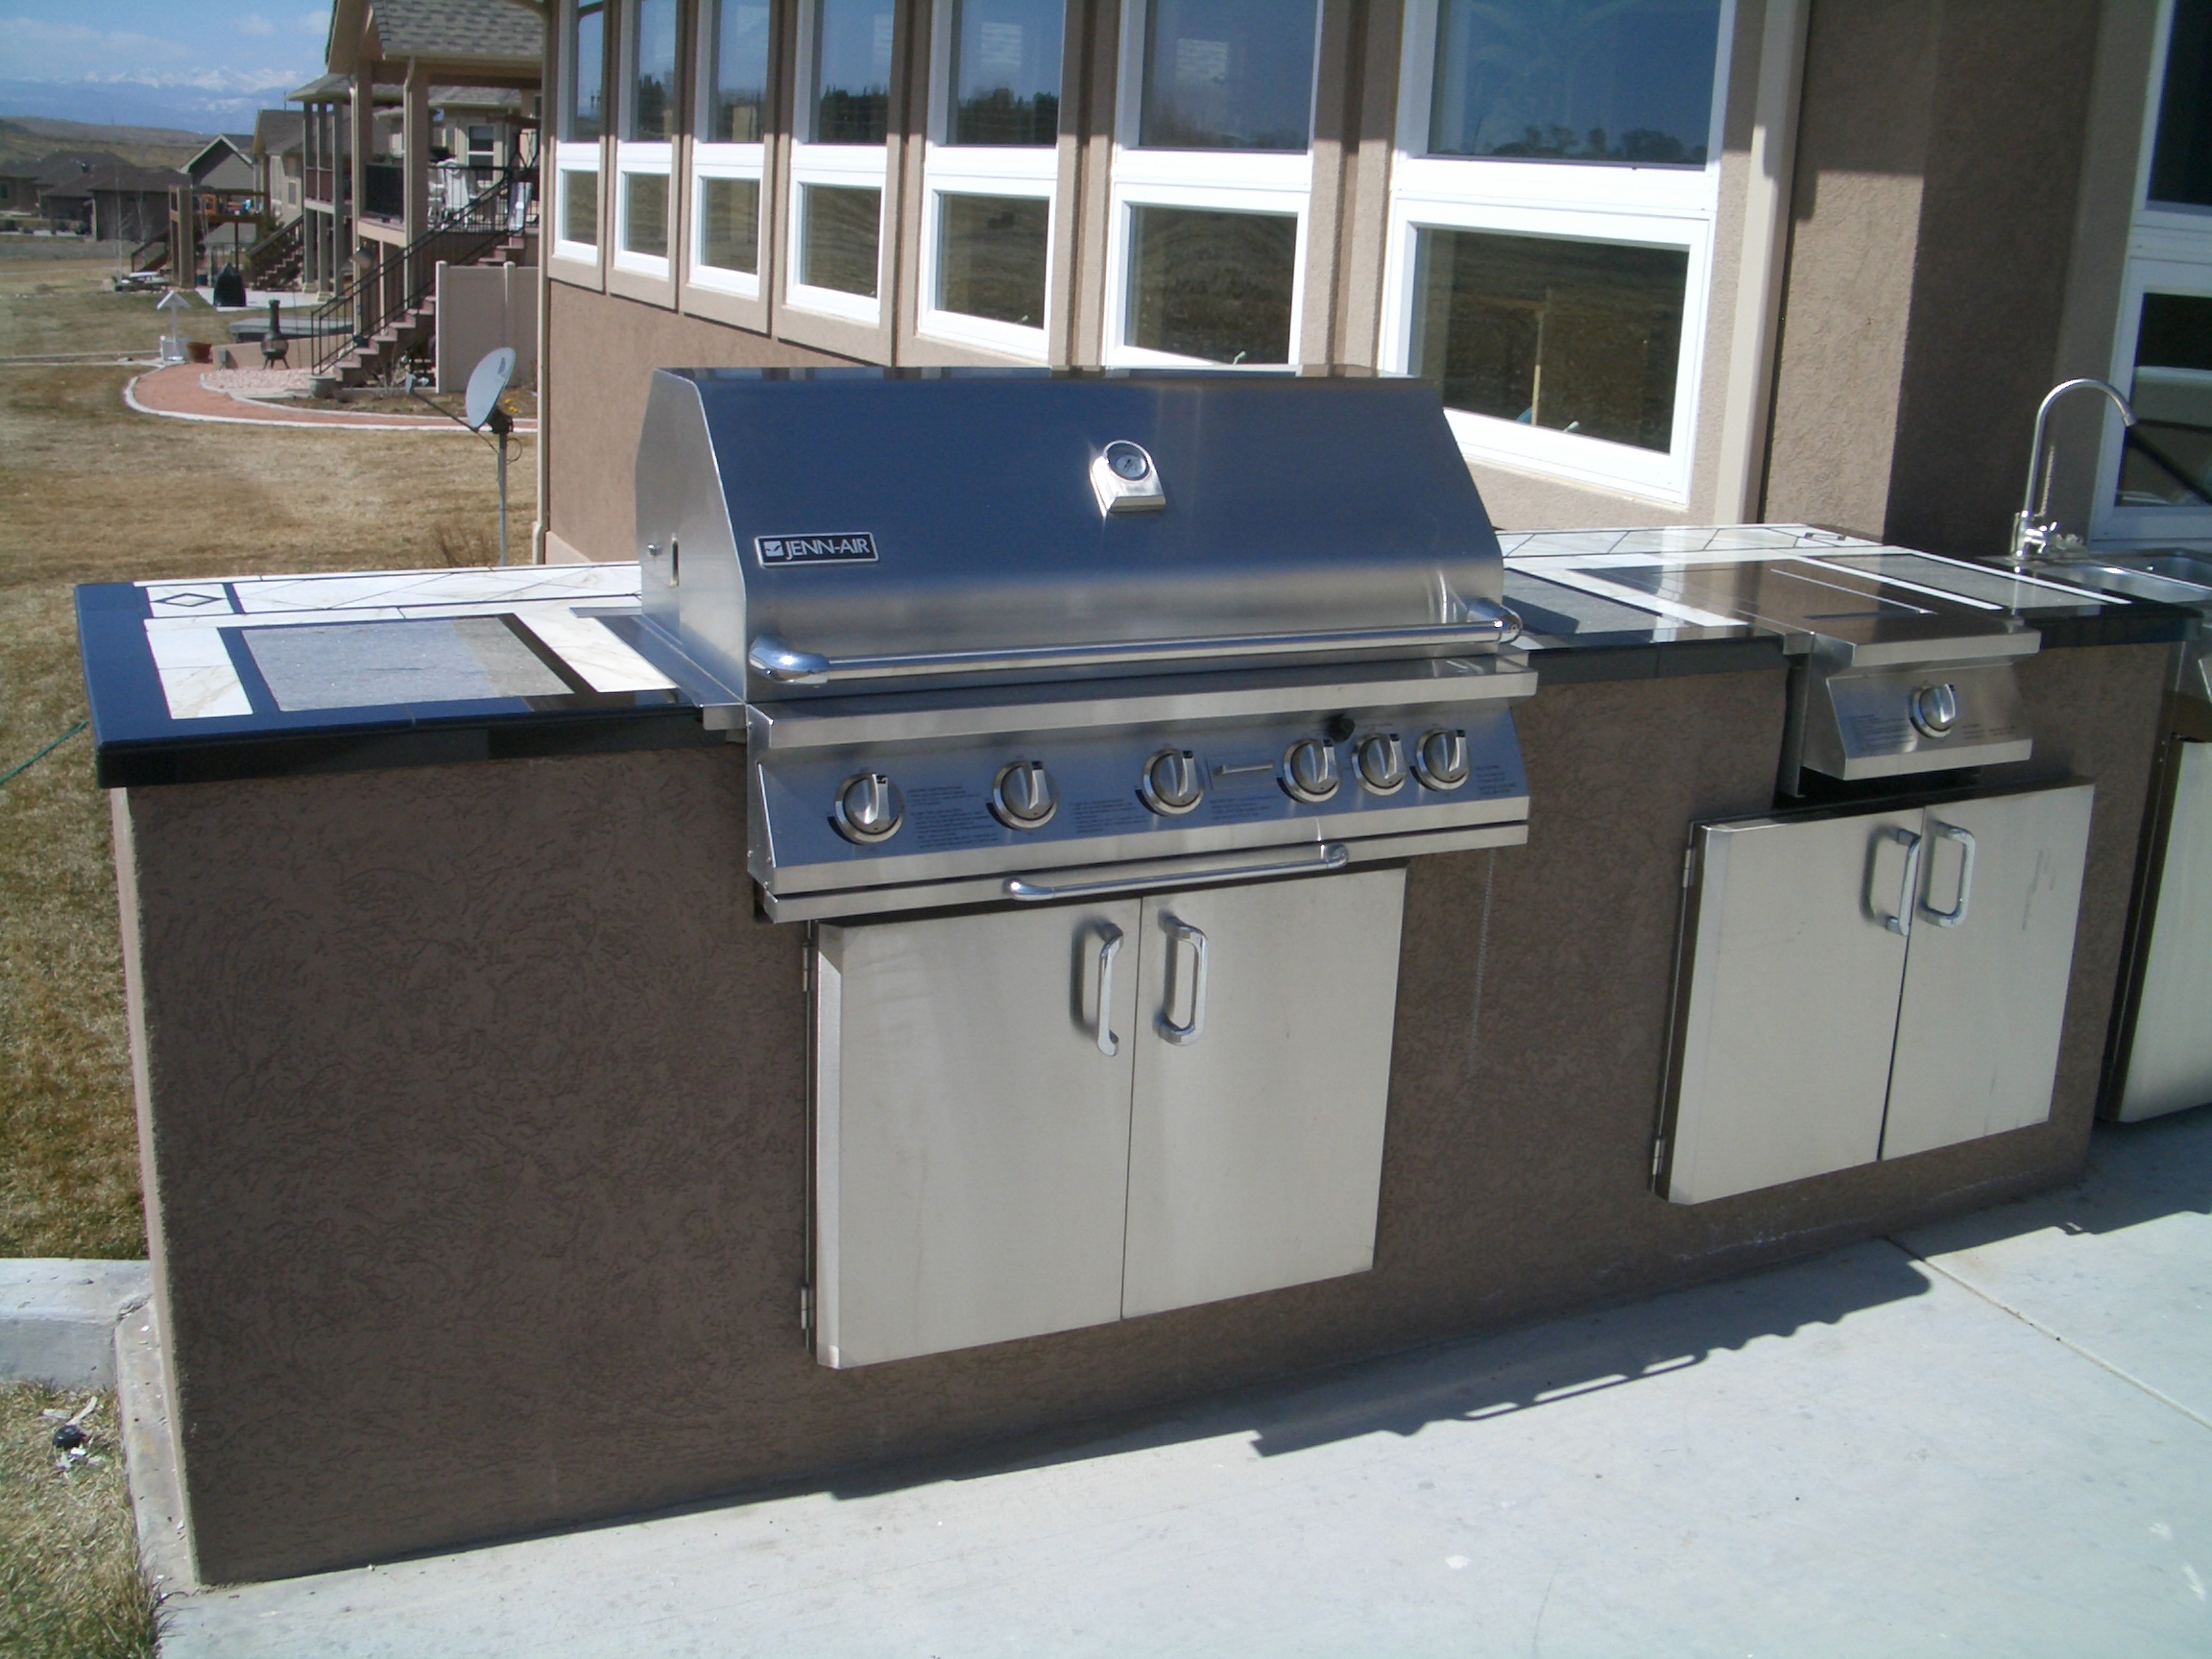 Incredible BBQ Island Outdoor Kitchen 2304 x 1728 · 1826 kB · jpeg